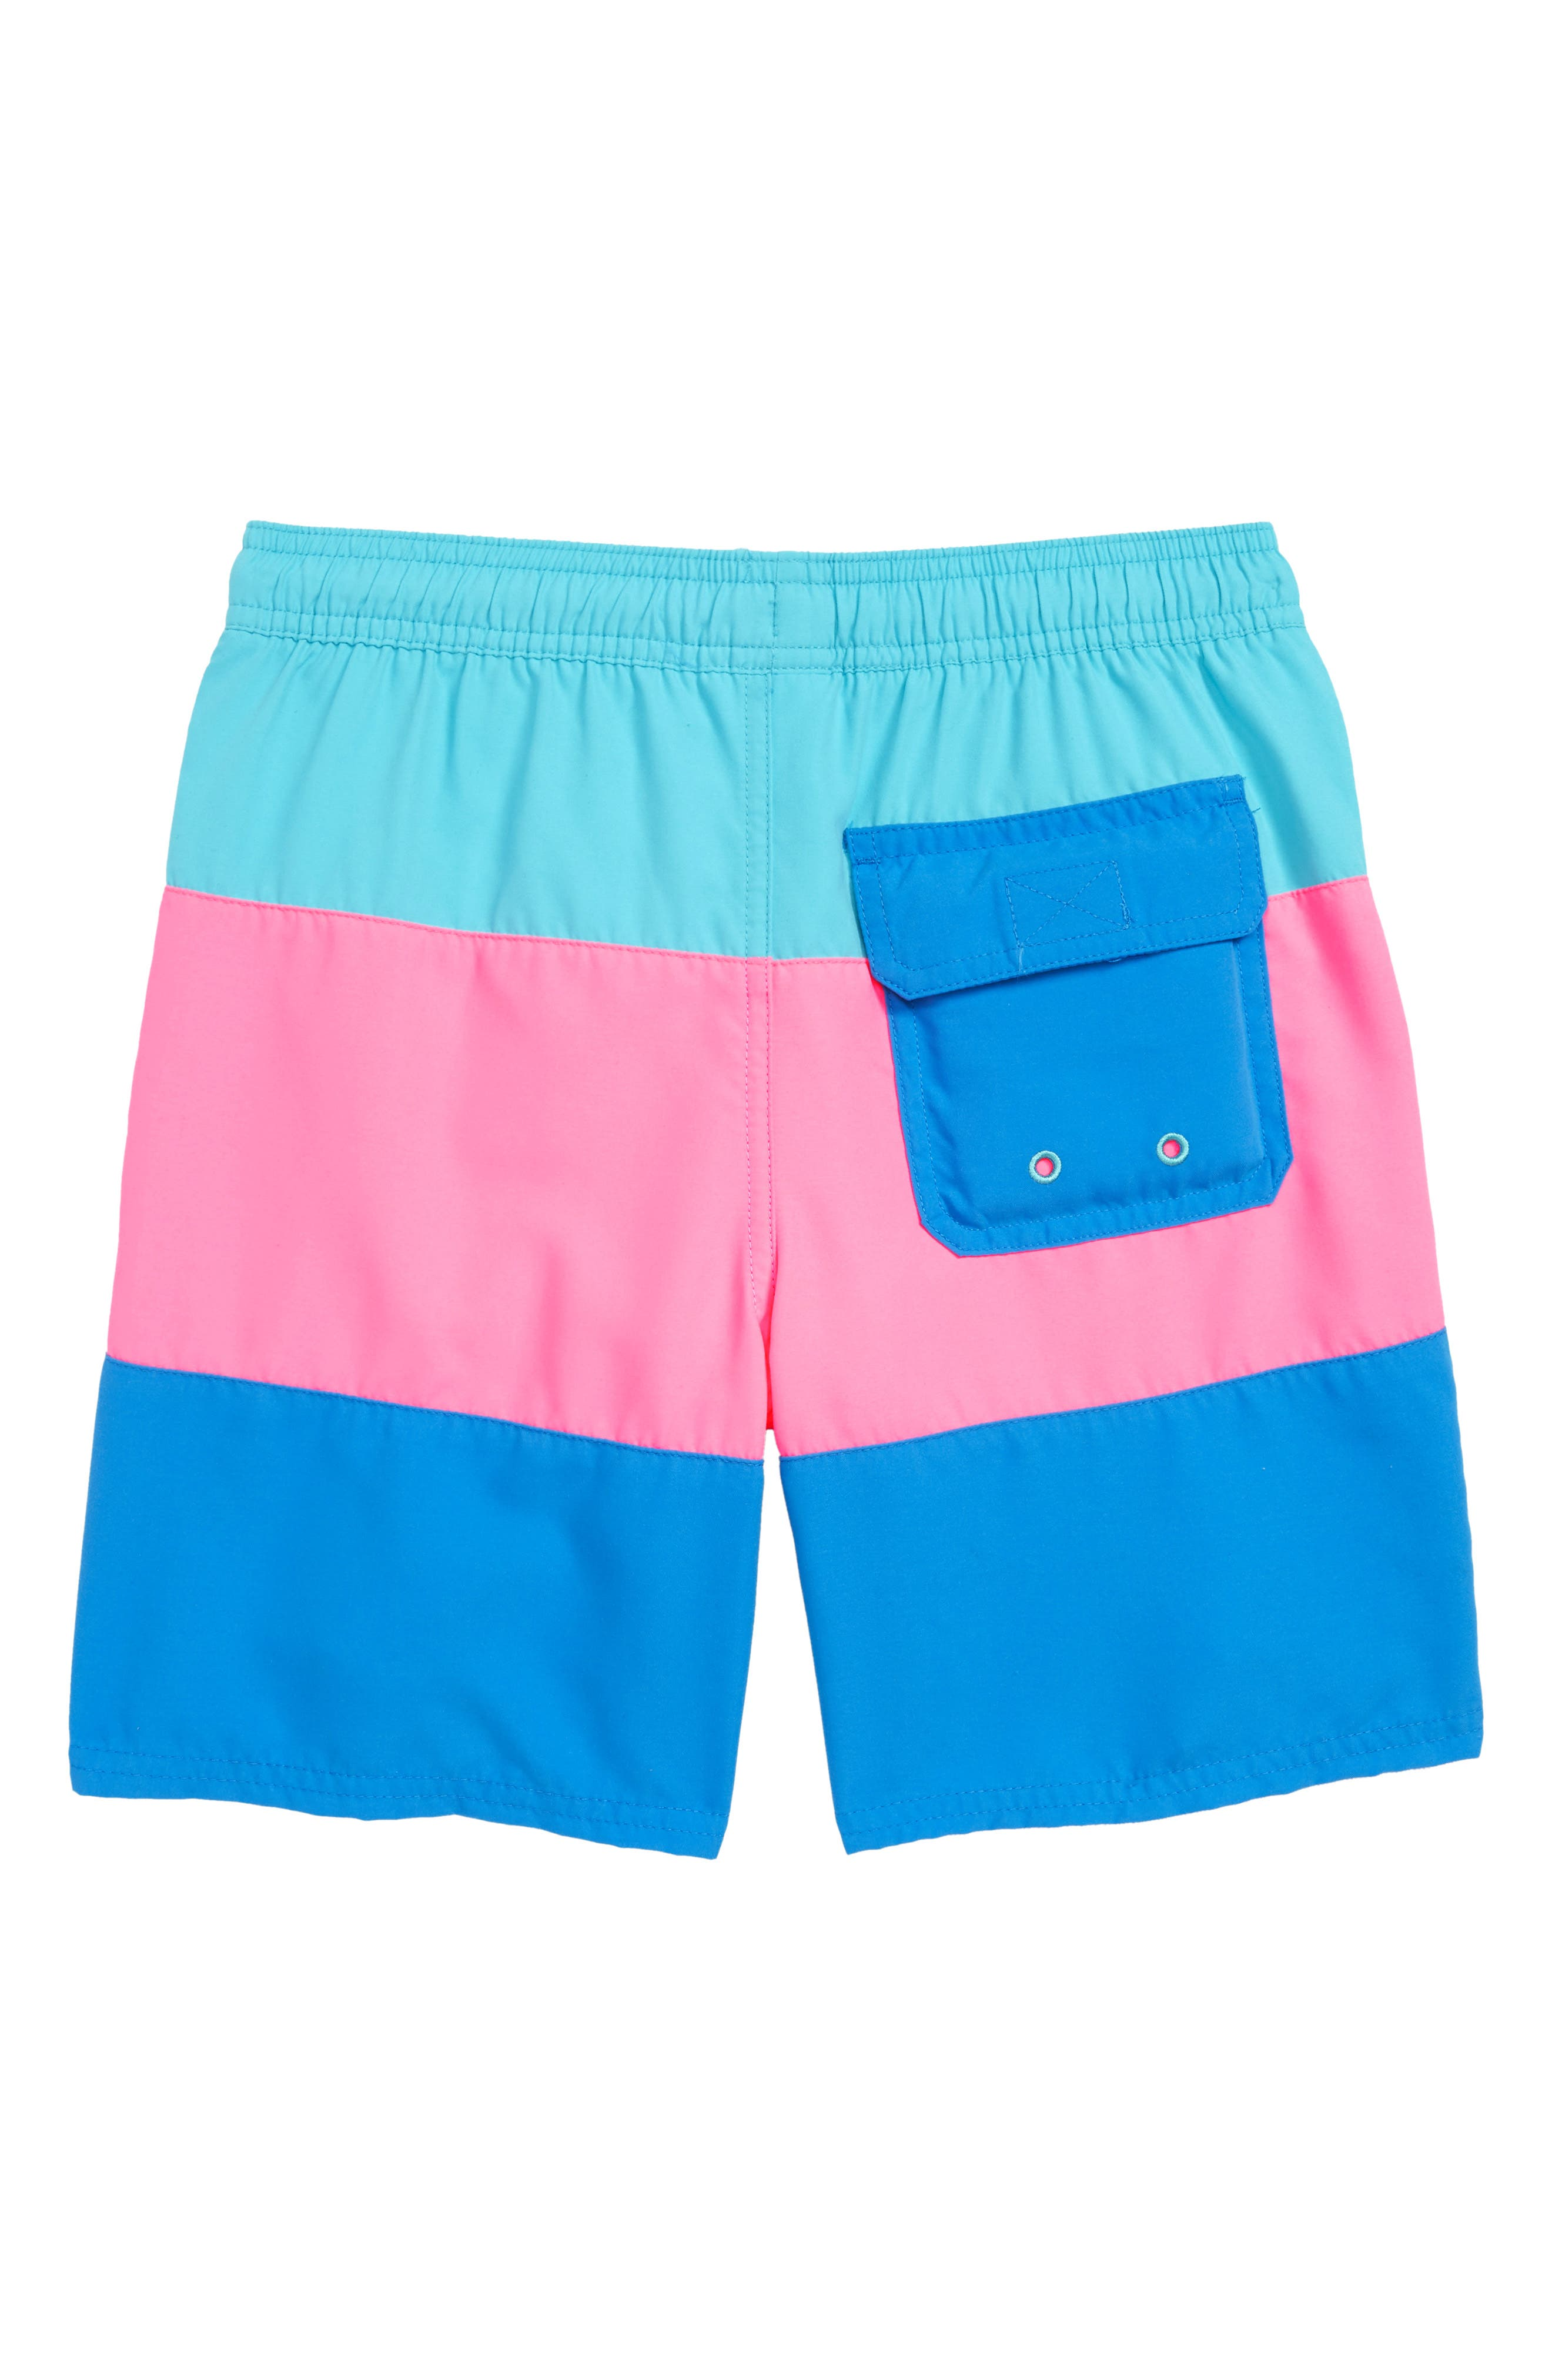 Chappy Pieced Rough Seas Swim Trunks,                             Alternate thumbnail 2, color,                             440